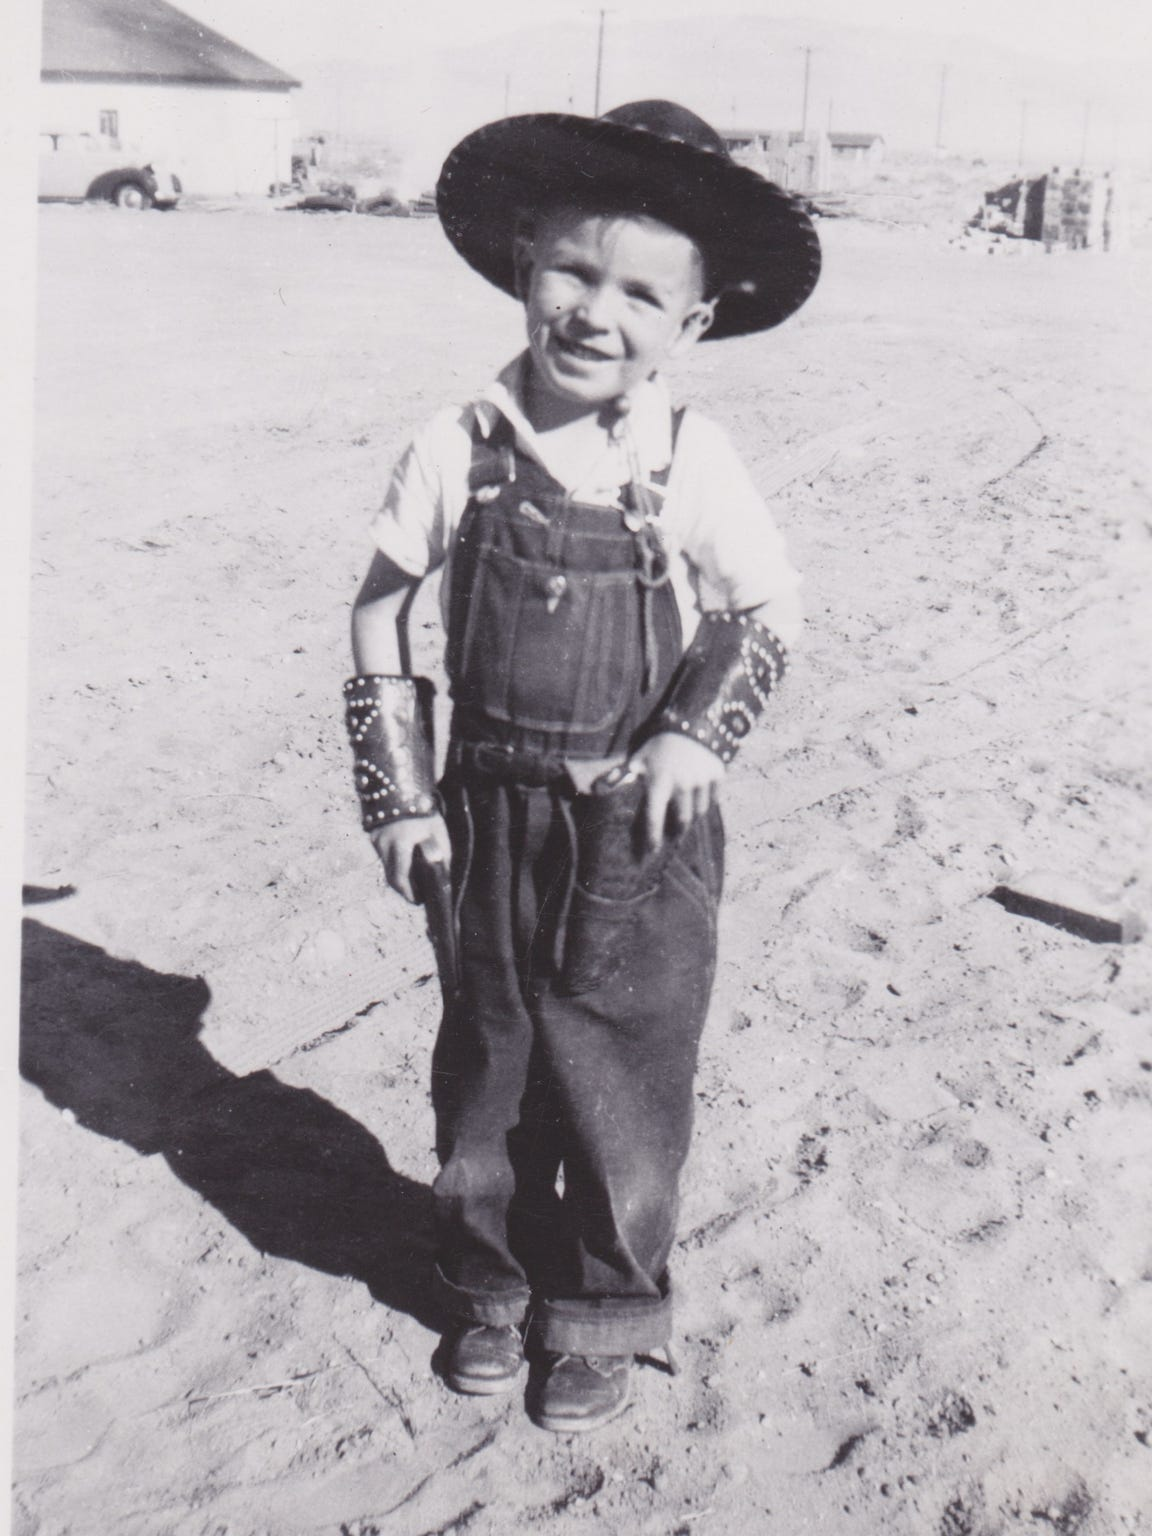 John Arthur Smith as a child in New Mexico.